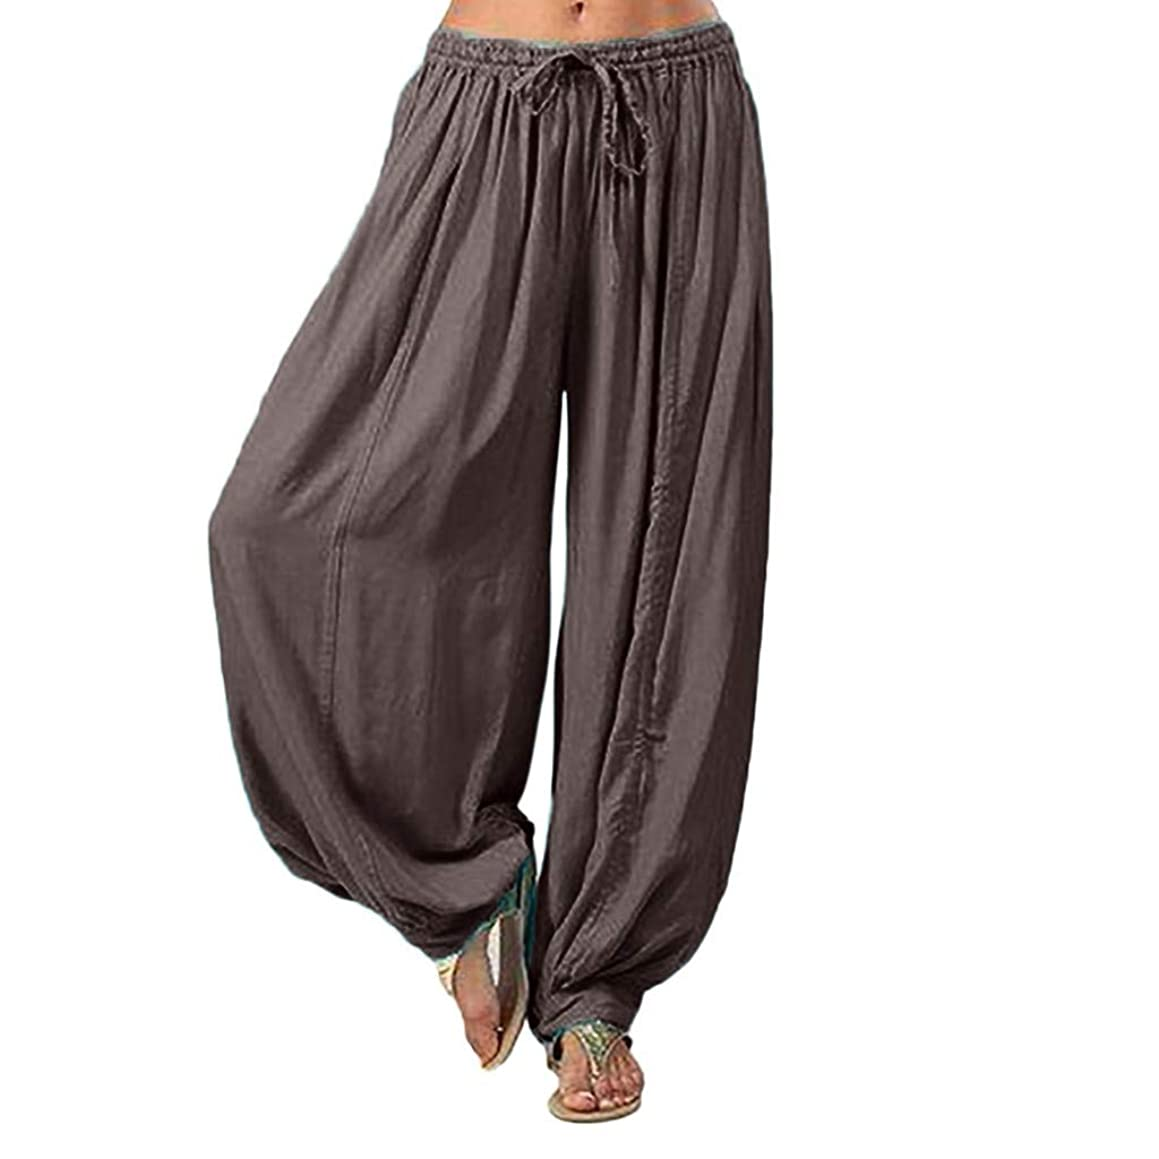 Duseedik Women's Harem Pants Plus Size Solid Color Loose Yoga Pants Pleated Cotton Trouser